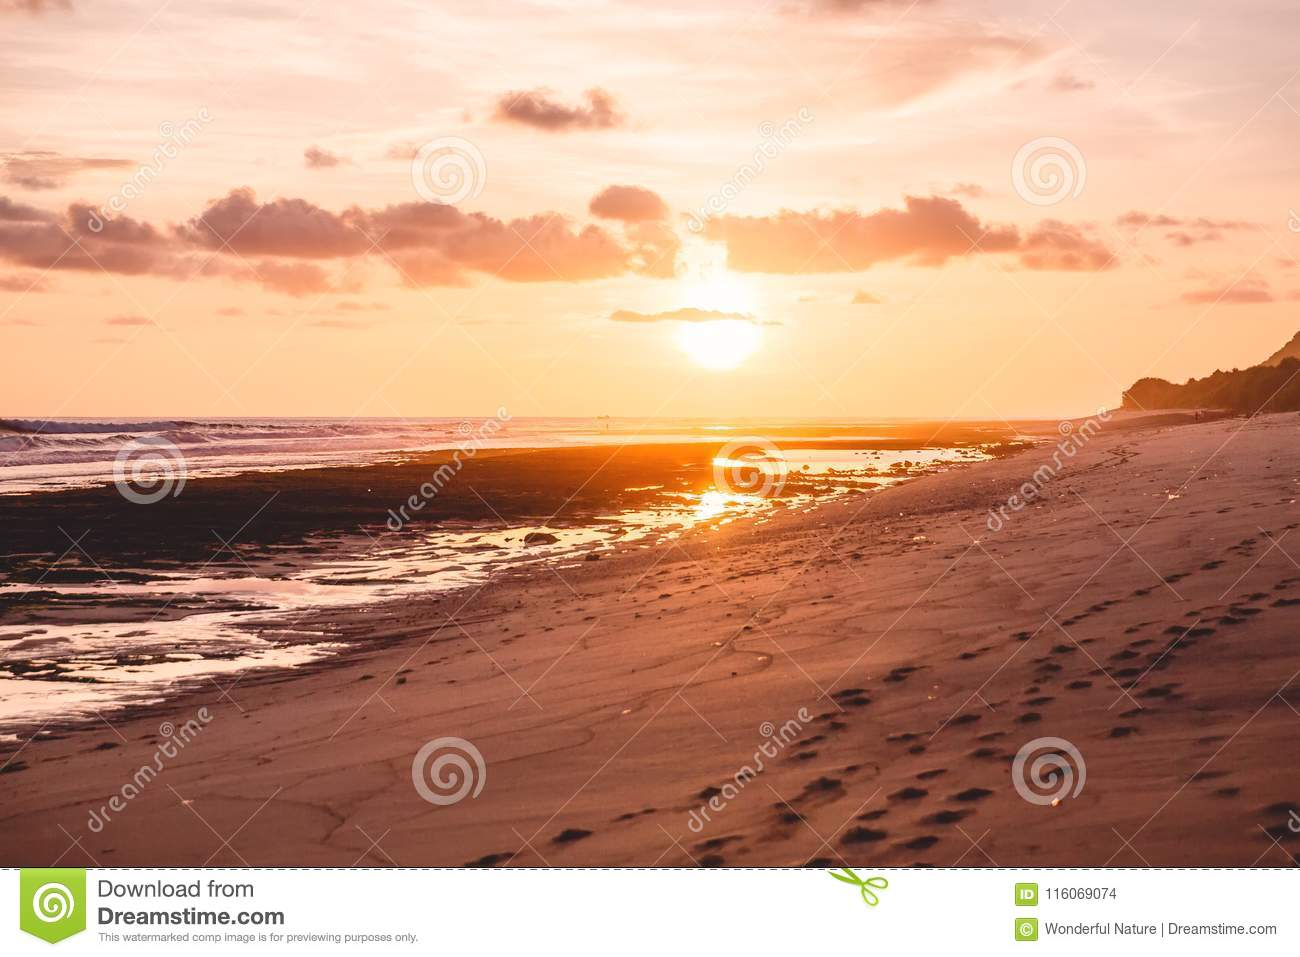 Tropical sandy beach and sunset or sunrise colors